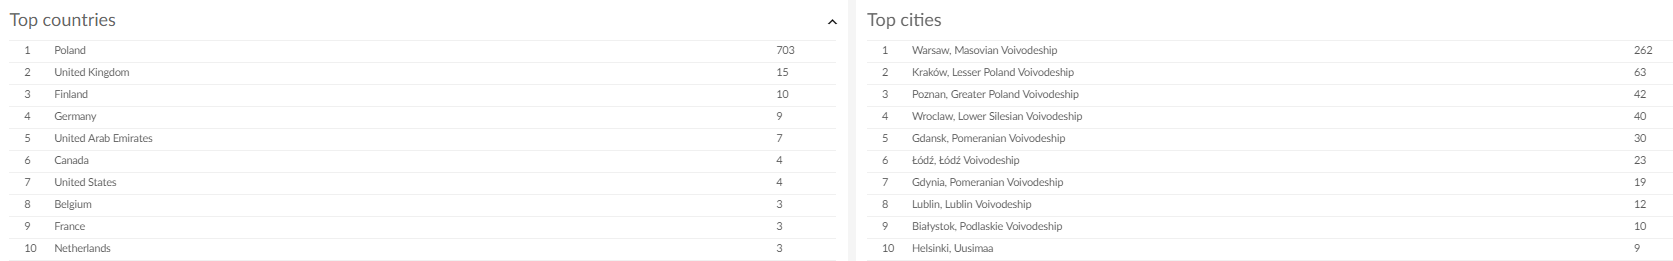 Top countries & Top cities